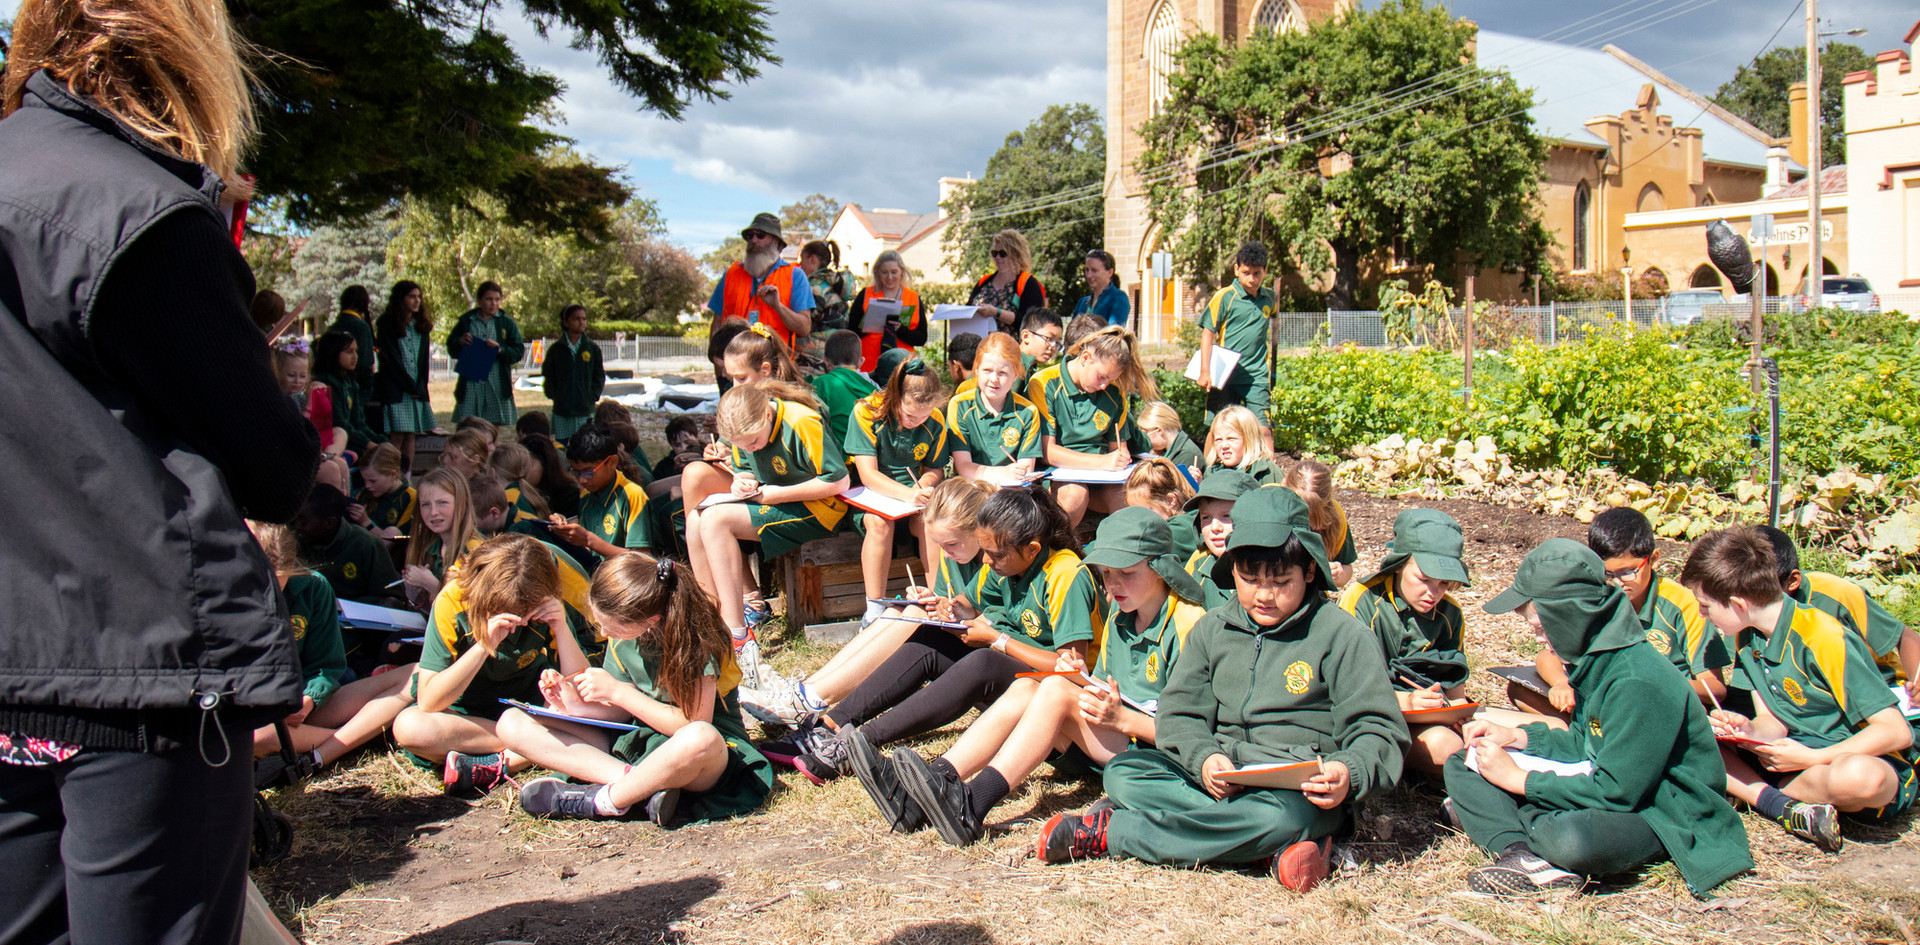 Children seated in Hobart City Farm